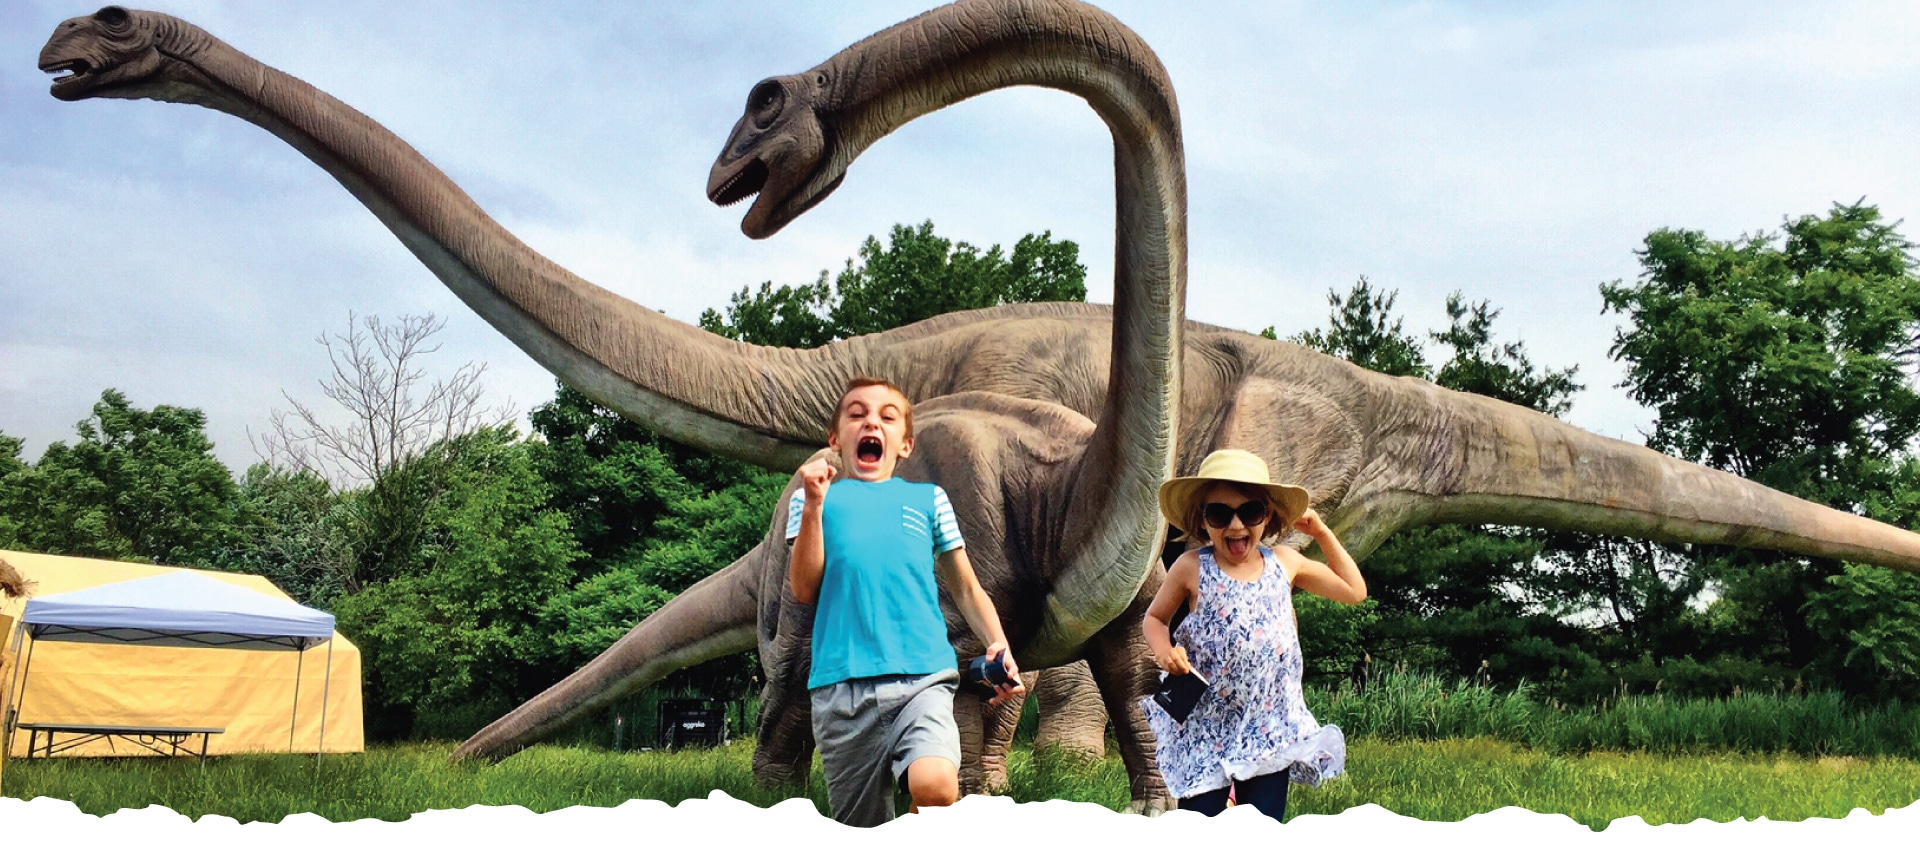 10-Immersive-Dinosaur-Adventures-That-Your-Kids-Will-Never-Forget-Field-Station-Dinosaurs